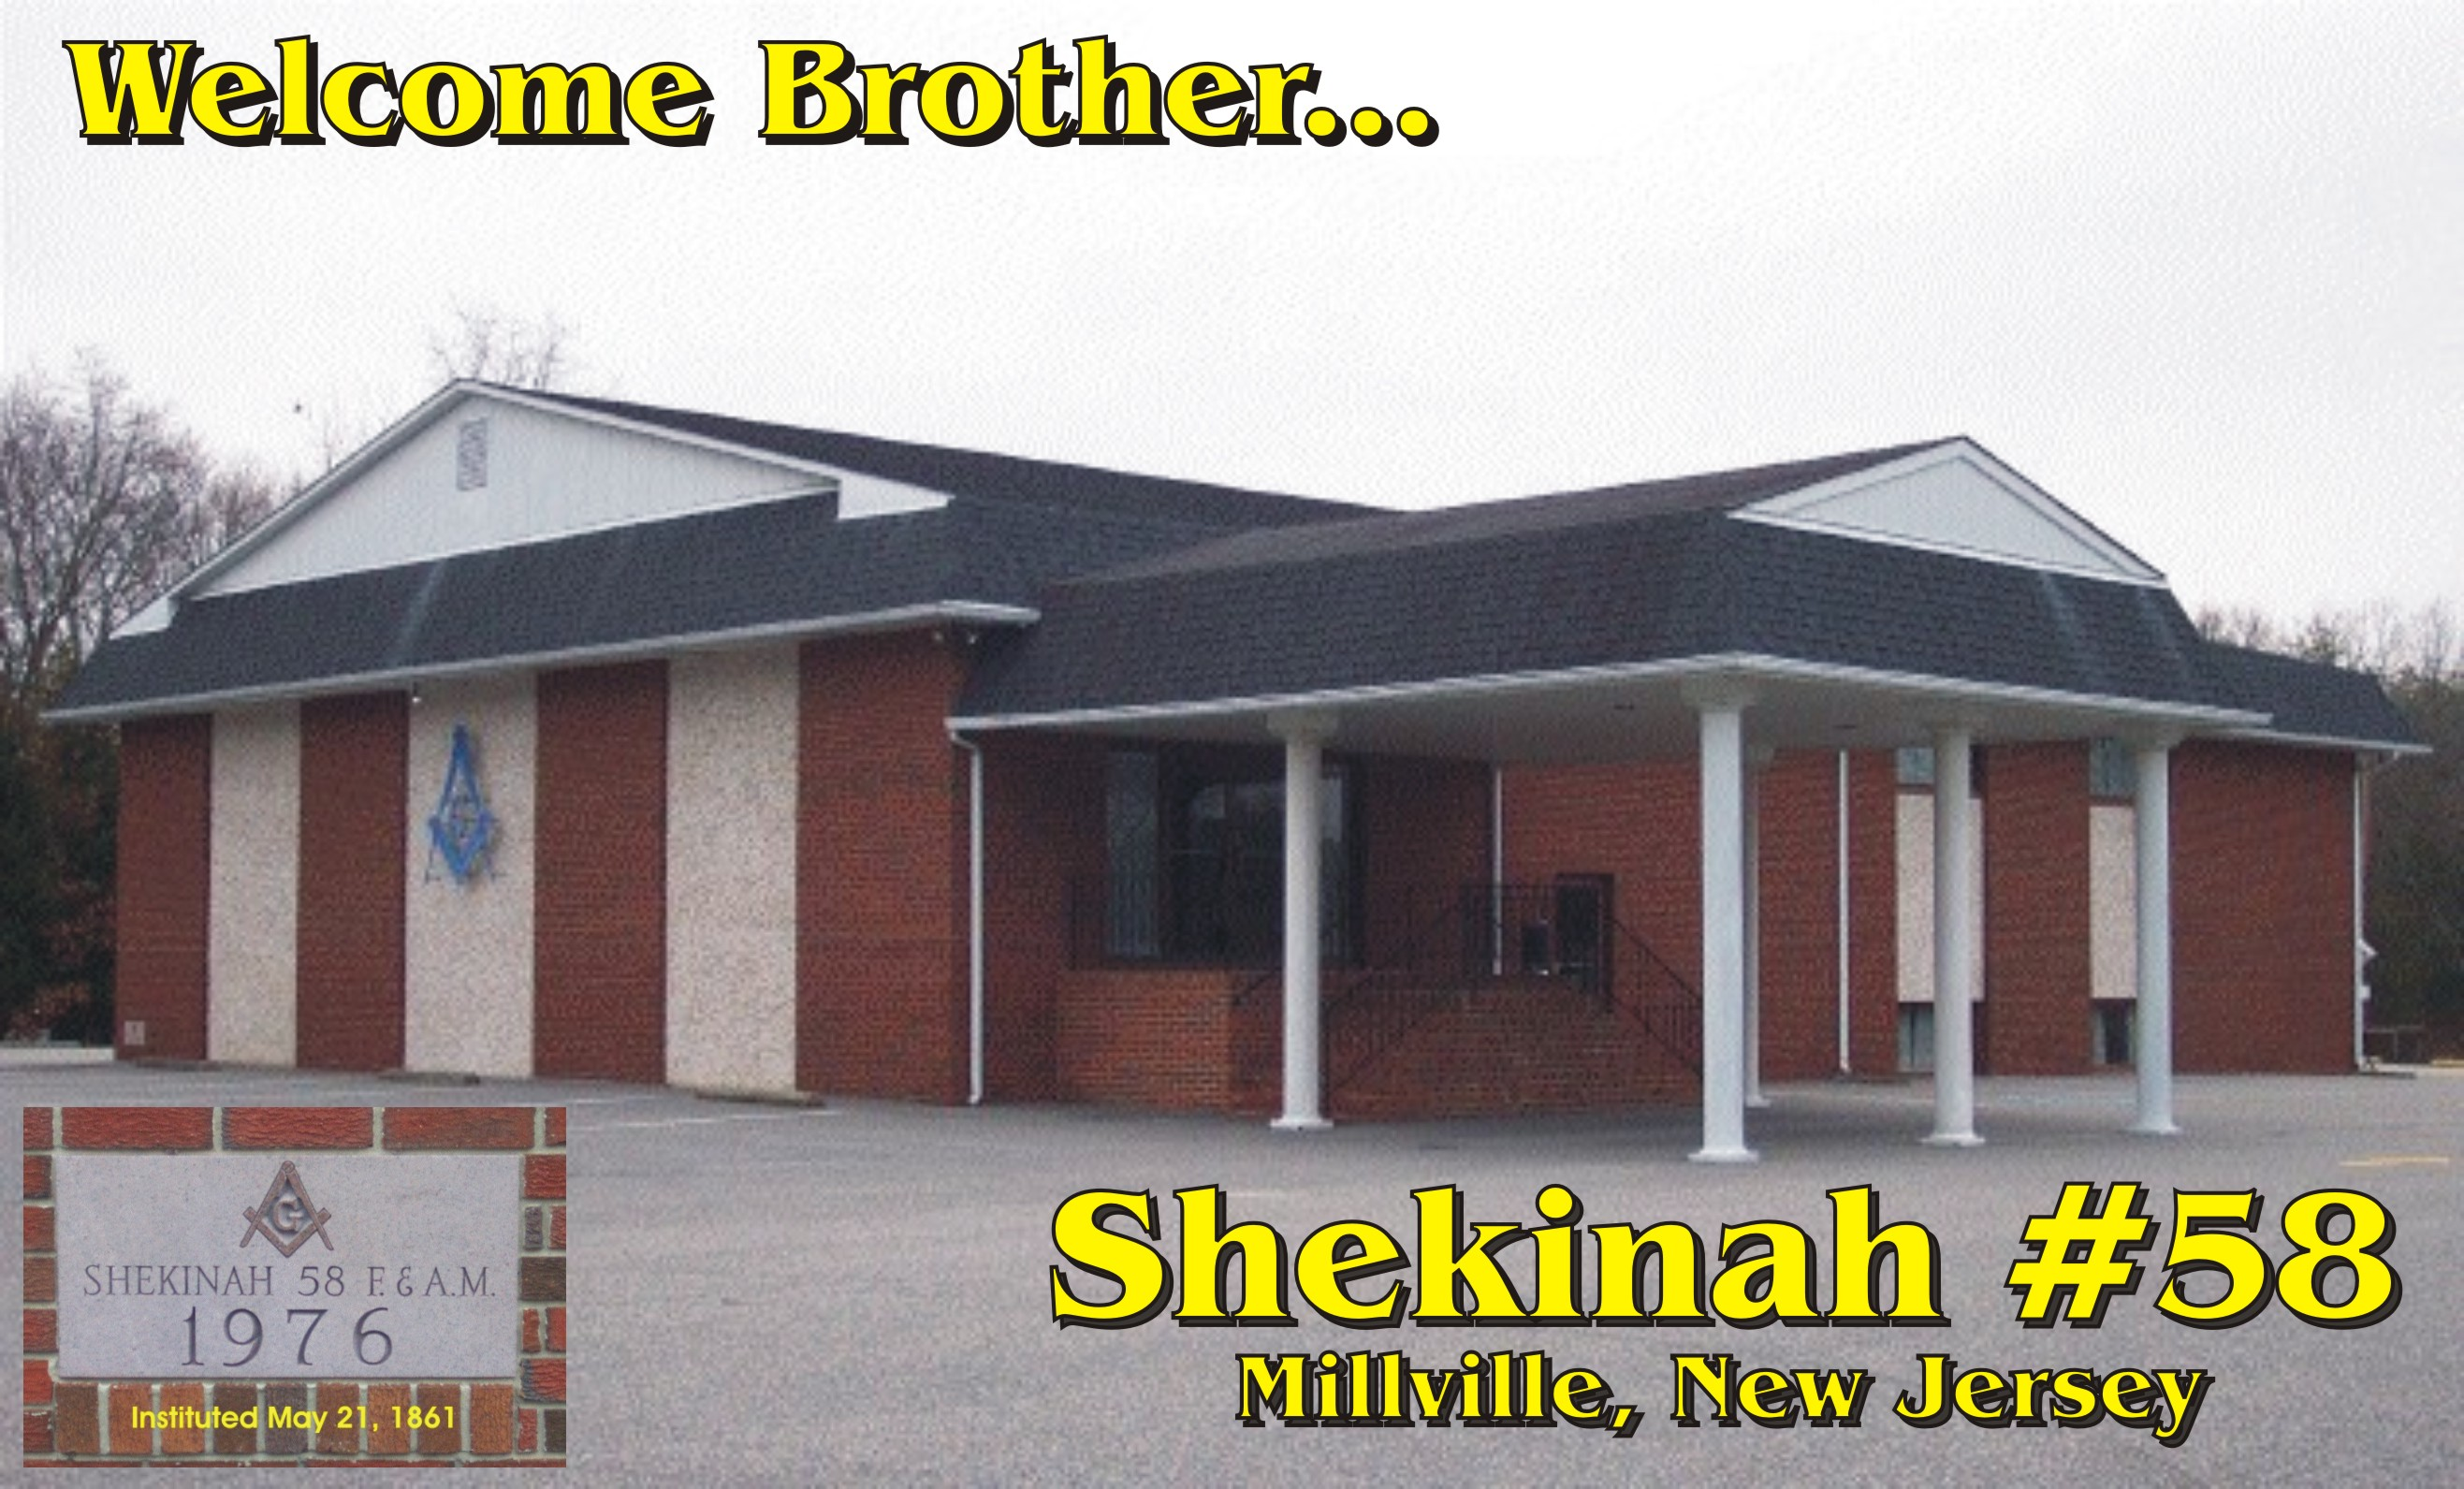 http://mastermason.com/shekinah58/images/Masonic%20Images/New%20Lodge.jpg